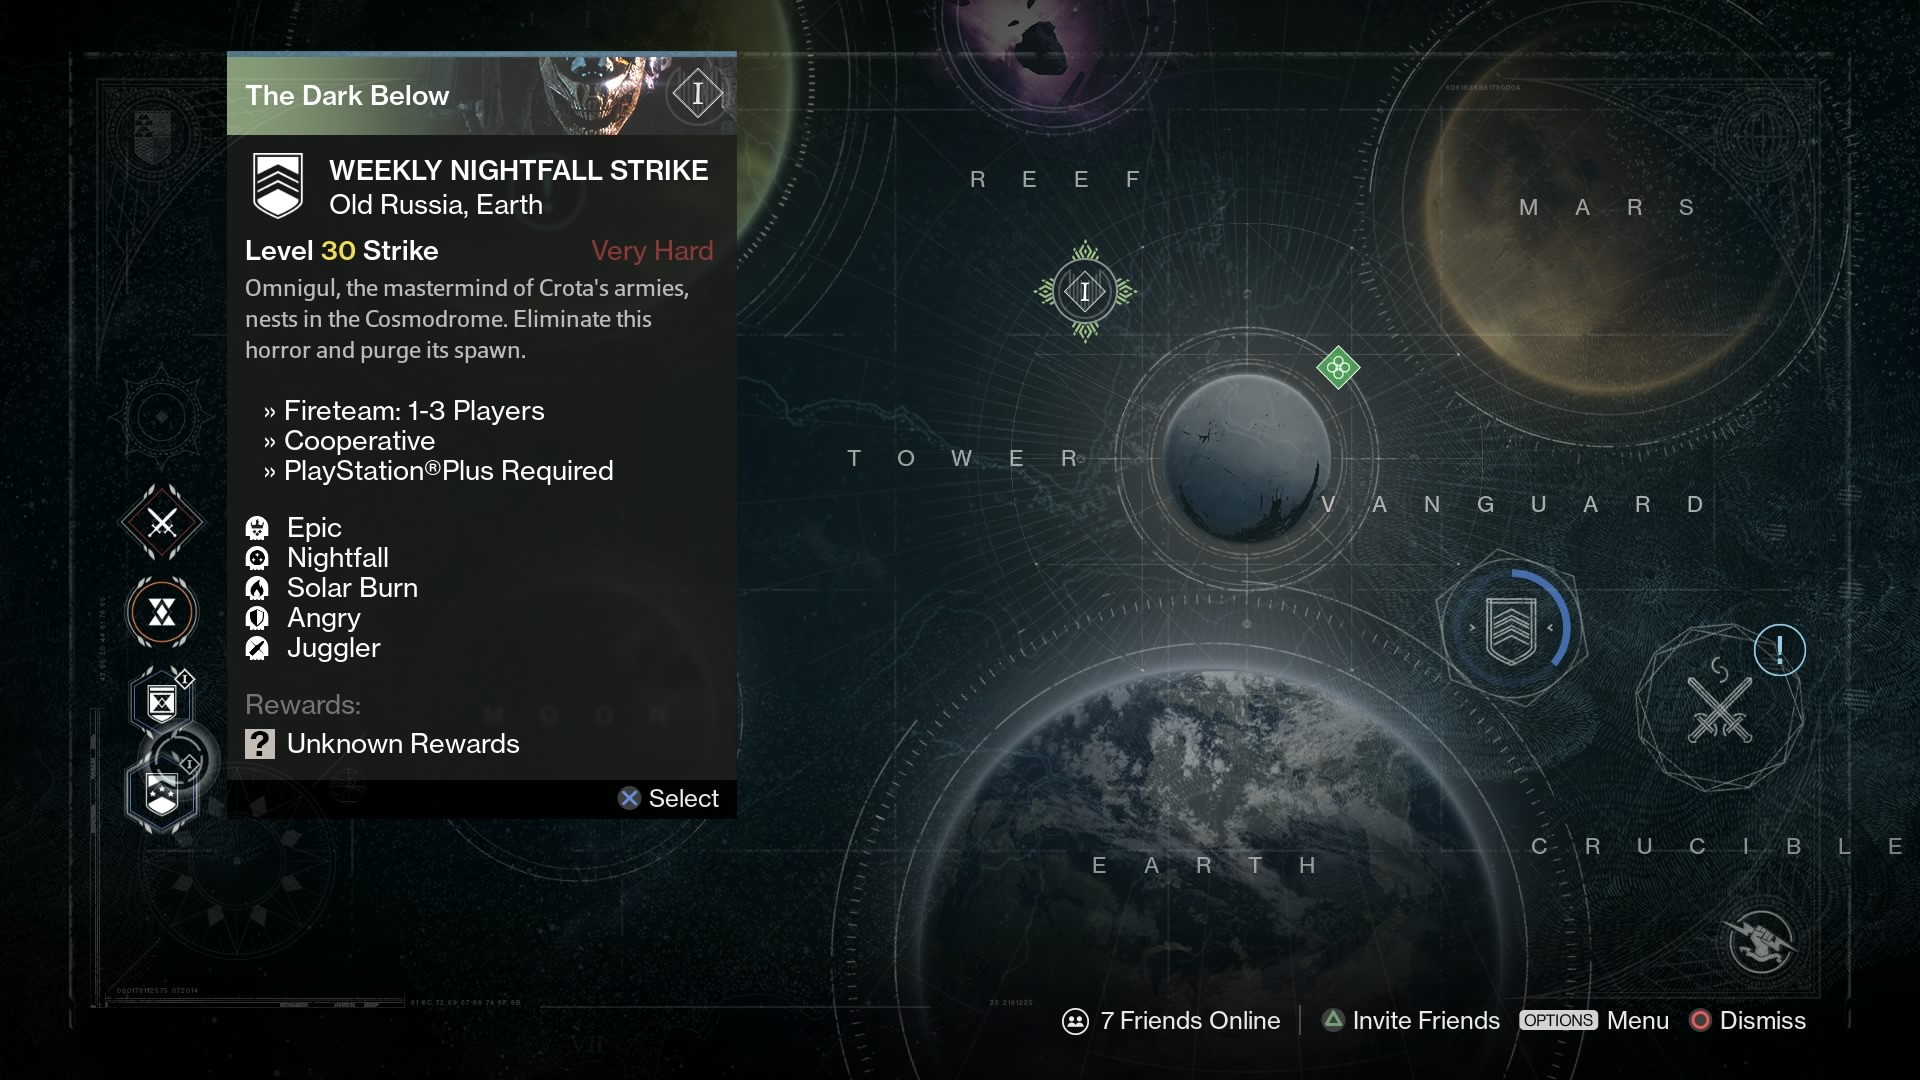 Bungie has once again rotated non-DLC owners out of Weekly Heroic and Nightfall Strikes for the week of Dec. 30 - Jan. 6, proving that until you buy the add-on you might be temporarily unable to participate.